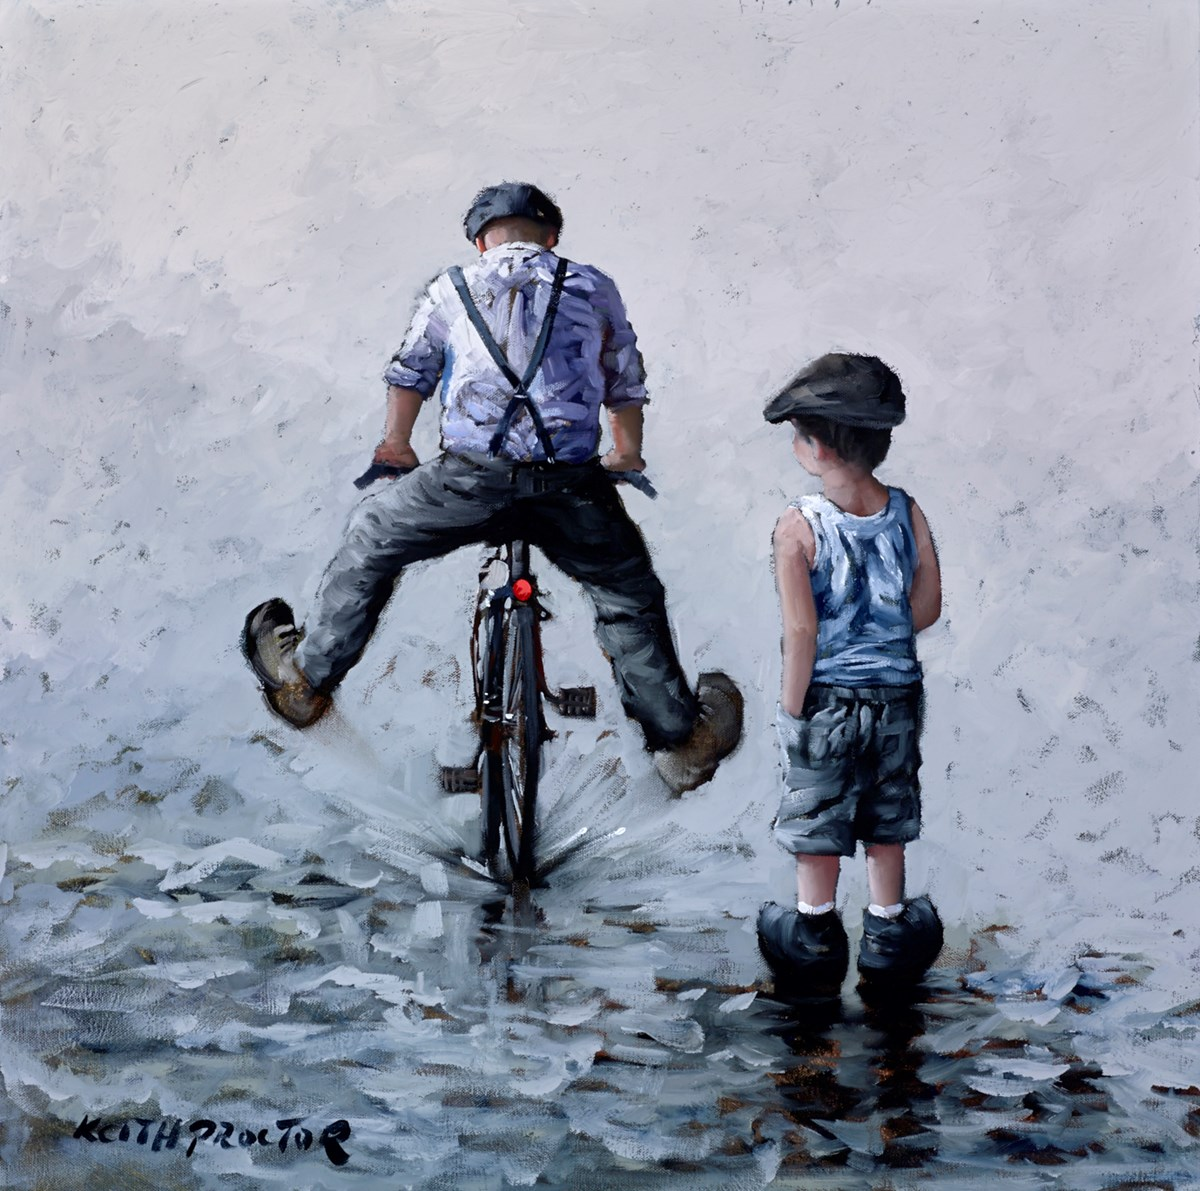 The Good Old Days by keith proctor -  sized 24x24 inches. Available from Whitewall Galleries